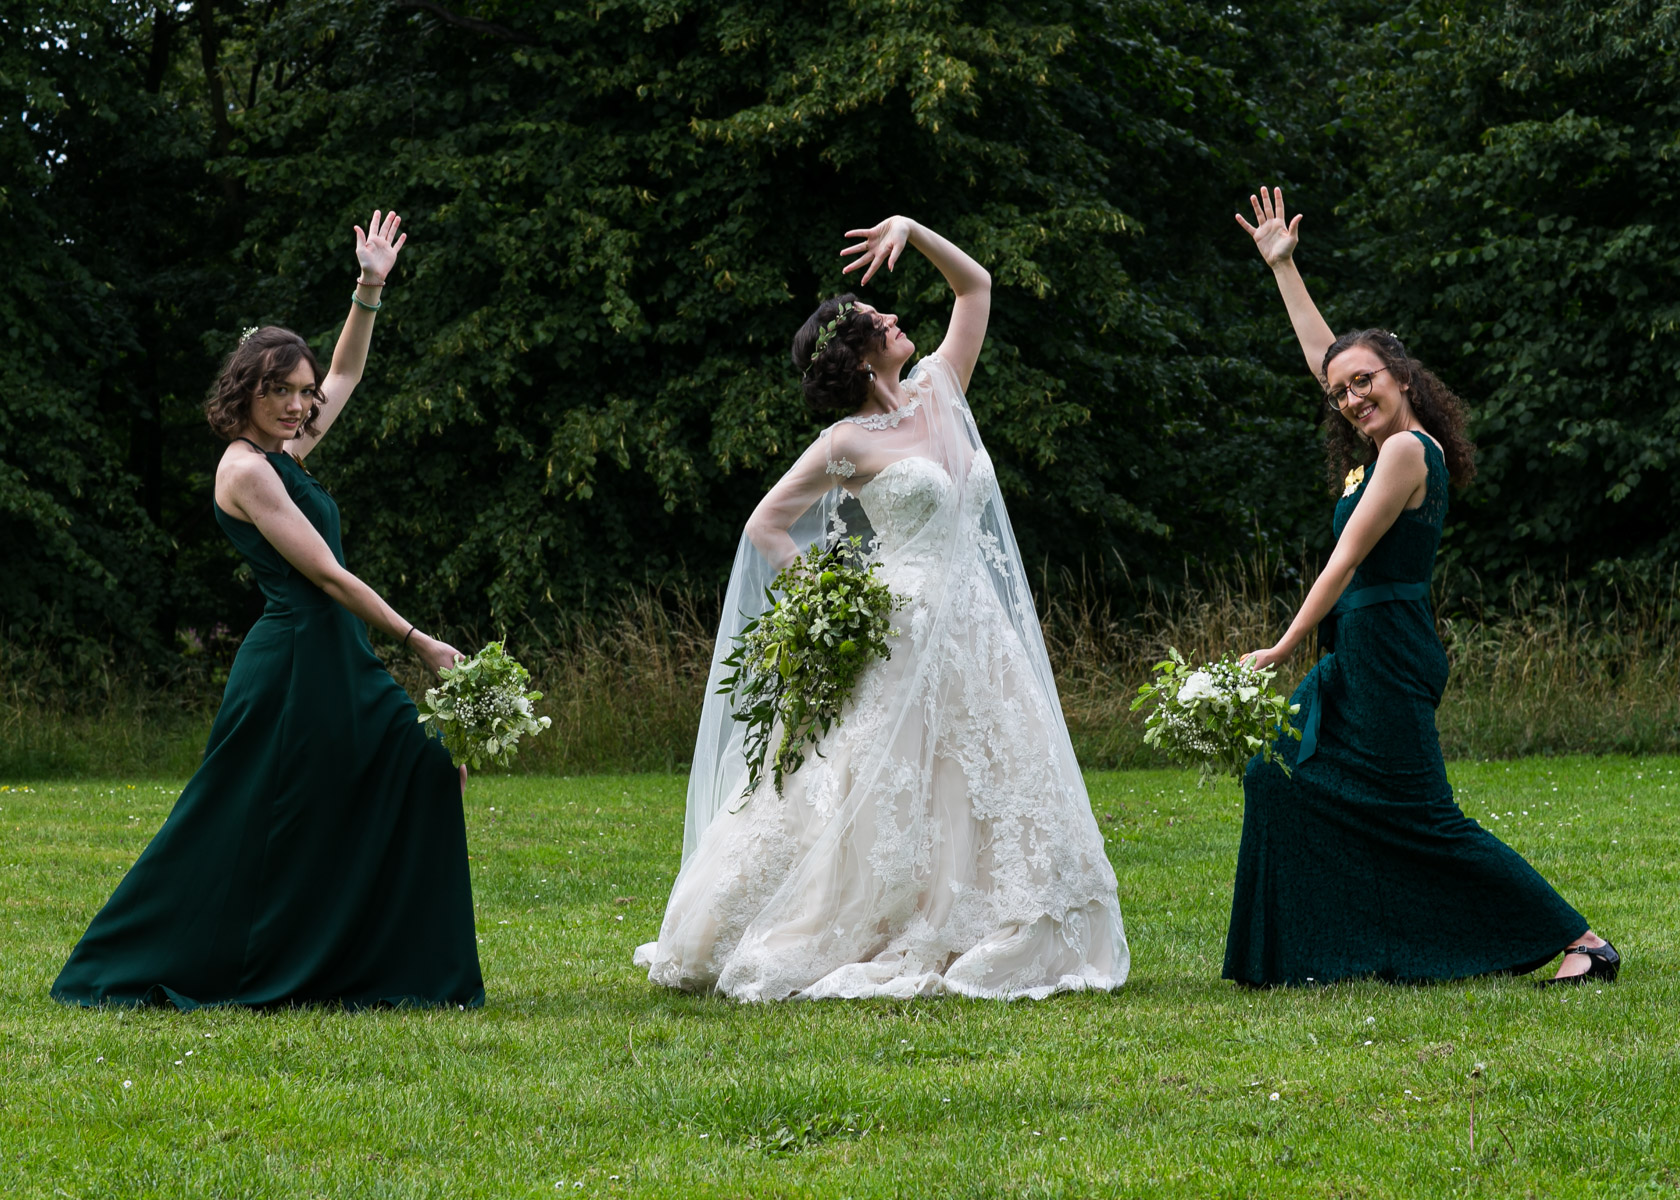 Relaxed bride and bridesmaids posing